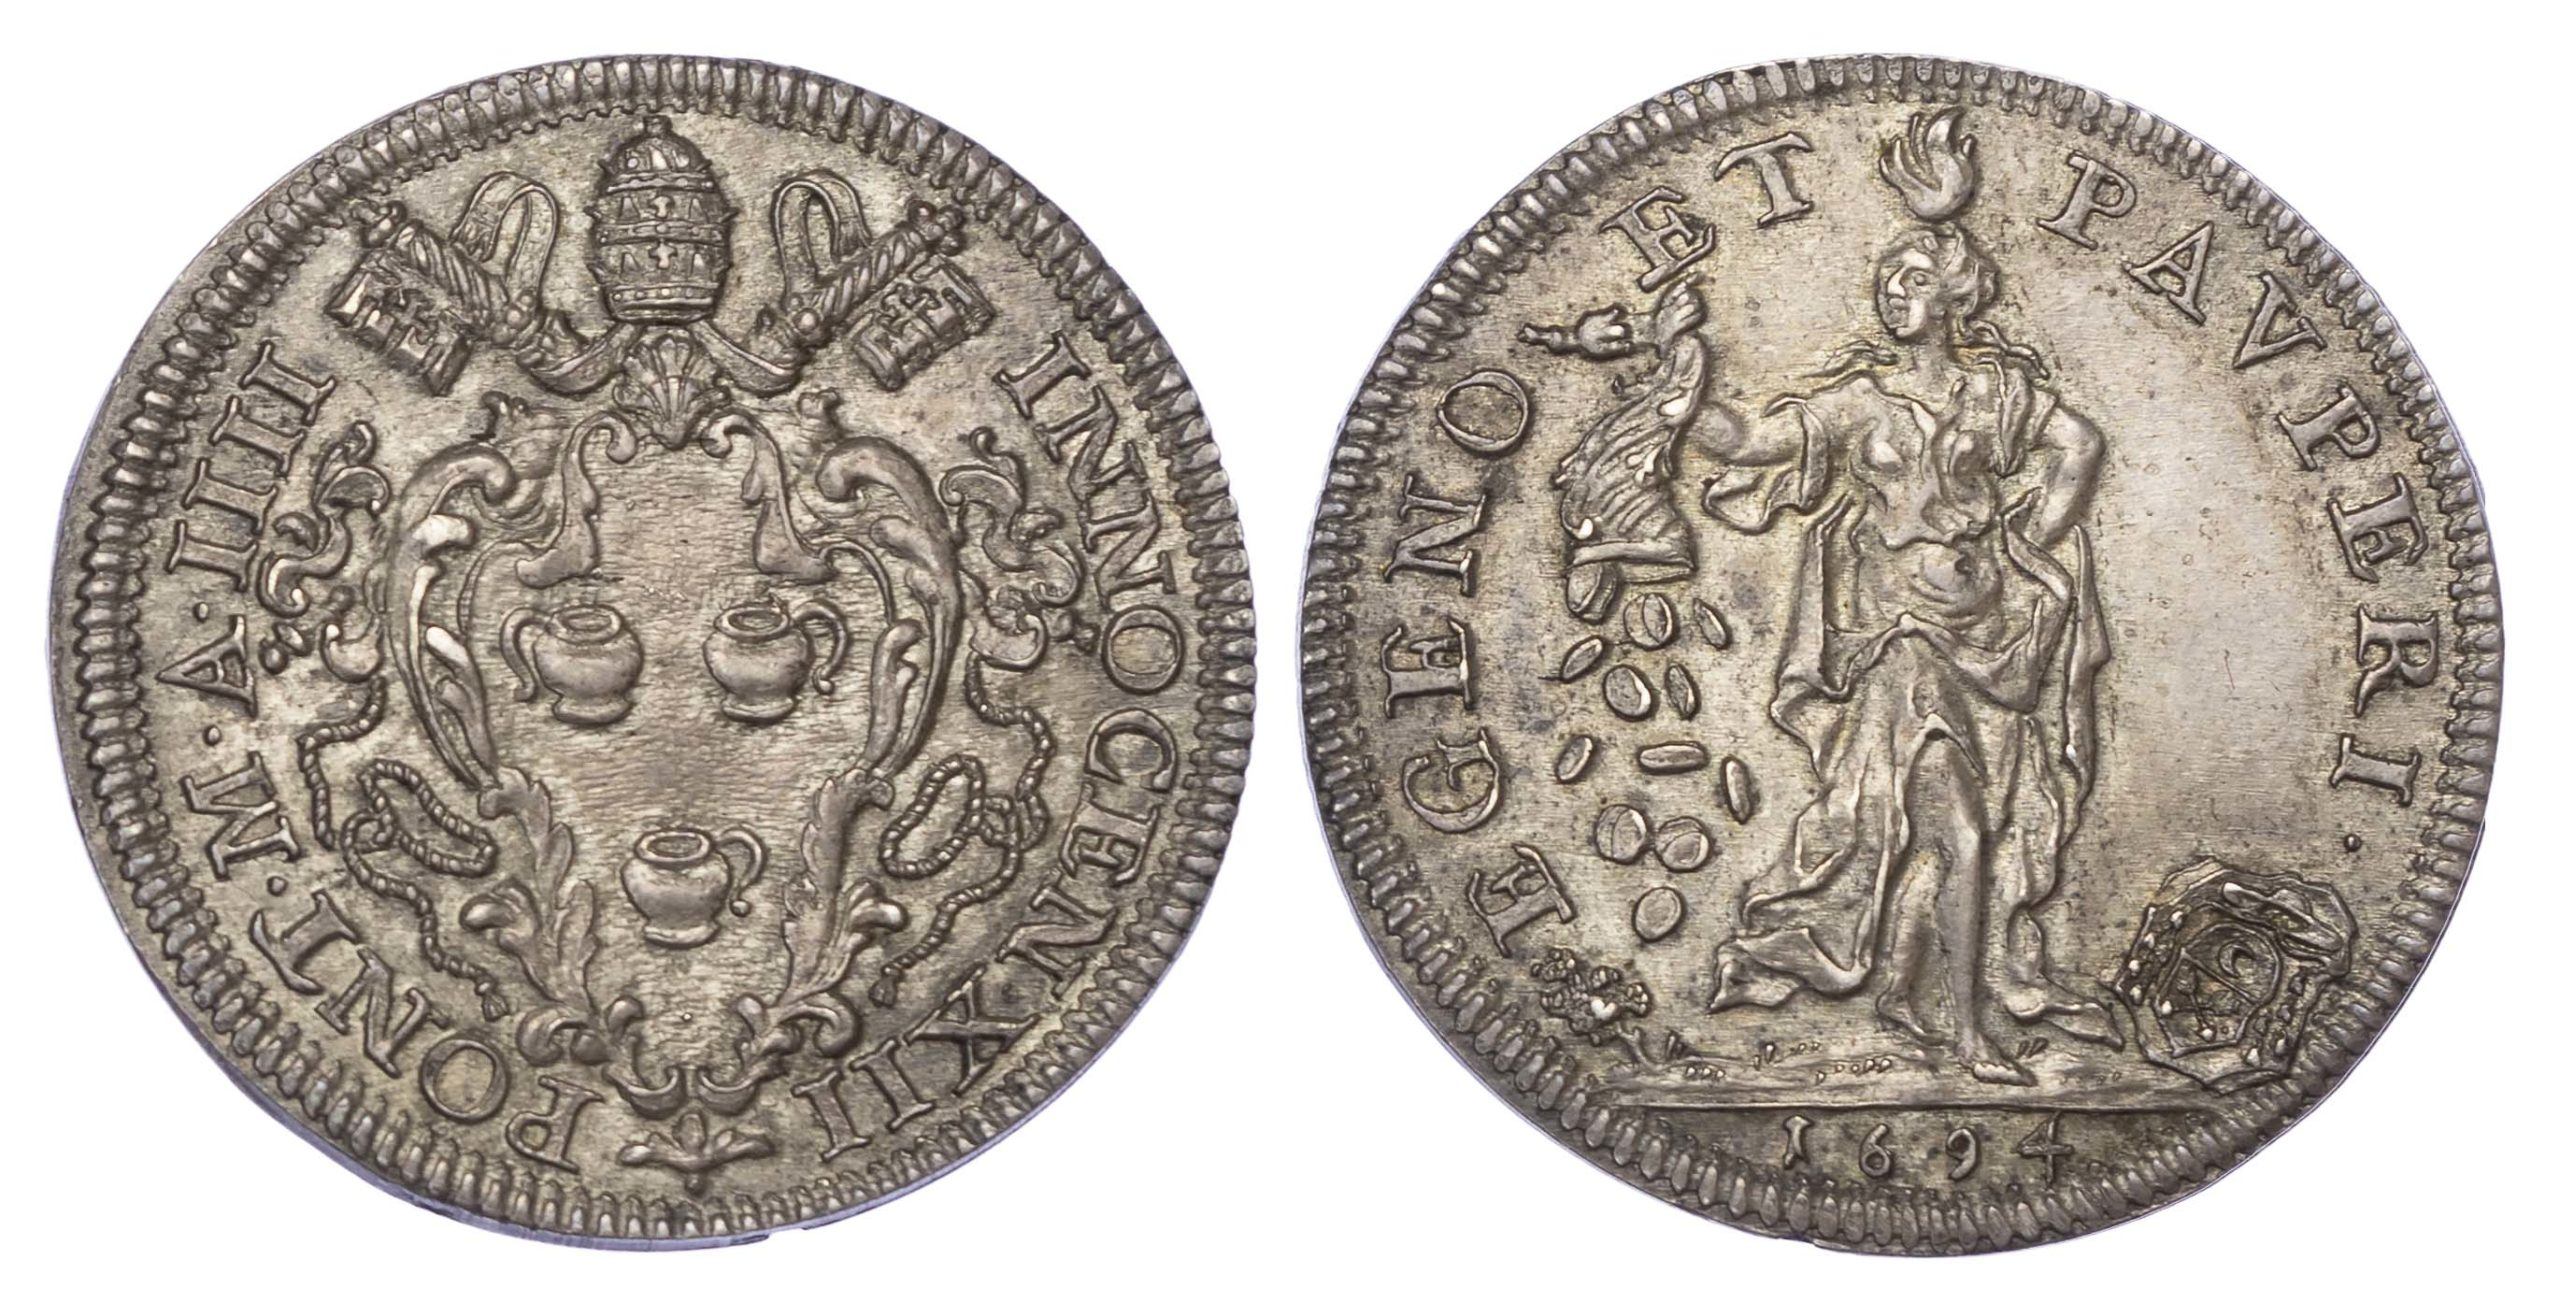 Italy, Papal States, Innocent XII, 1694 Silver Testone